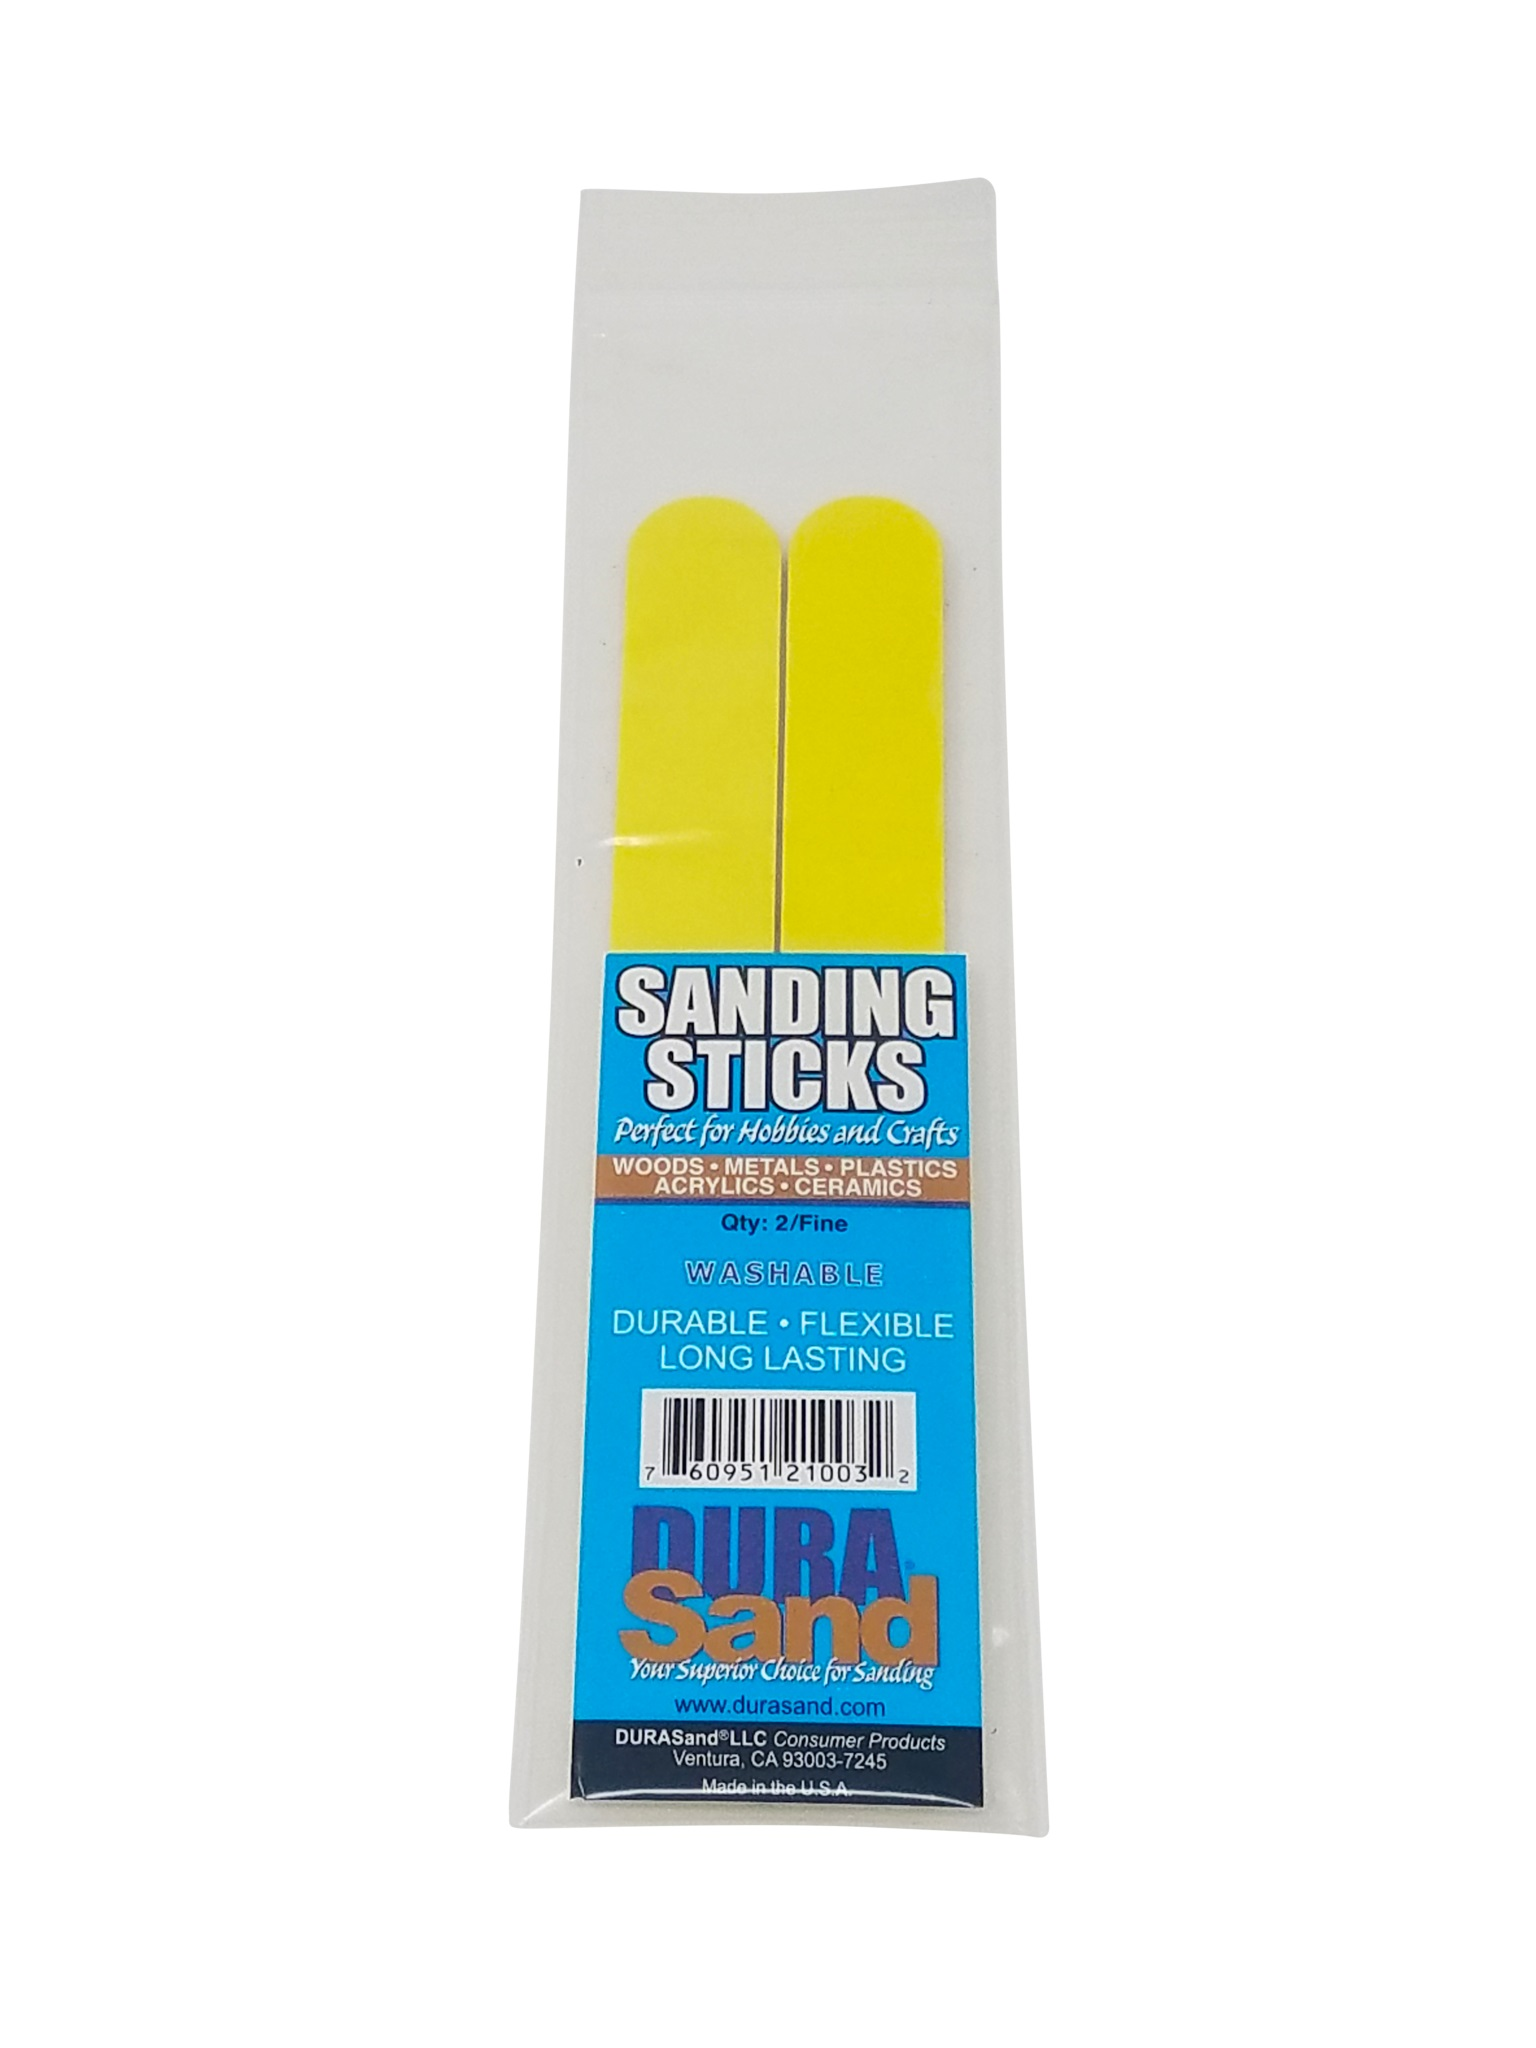 Sanding Sticks, 2 Pieces Bagged, 240/240 Yellow